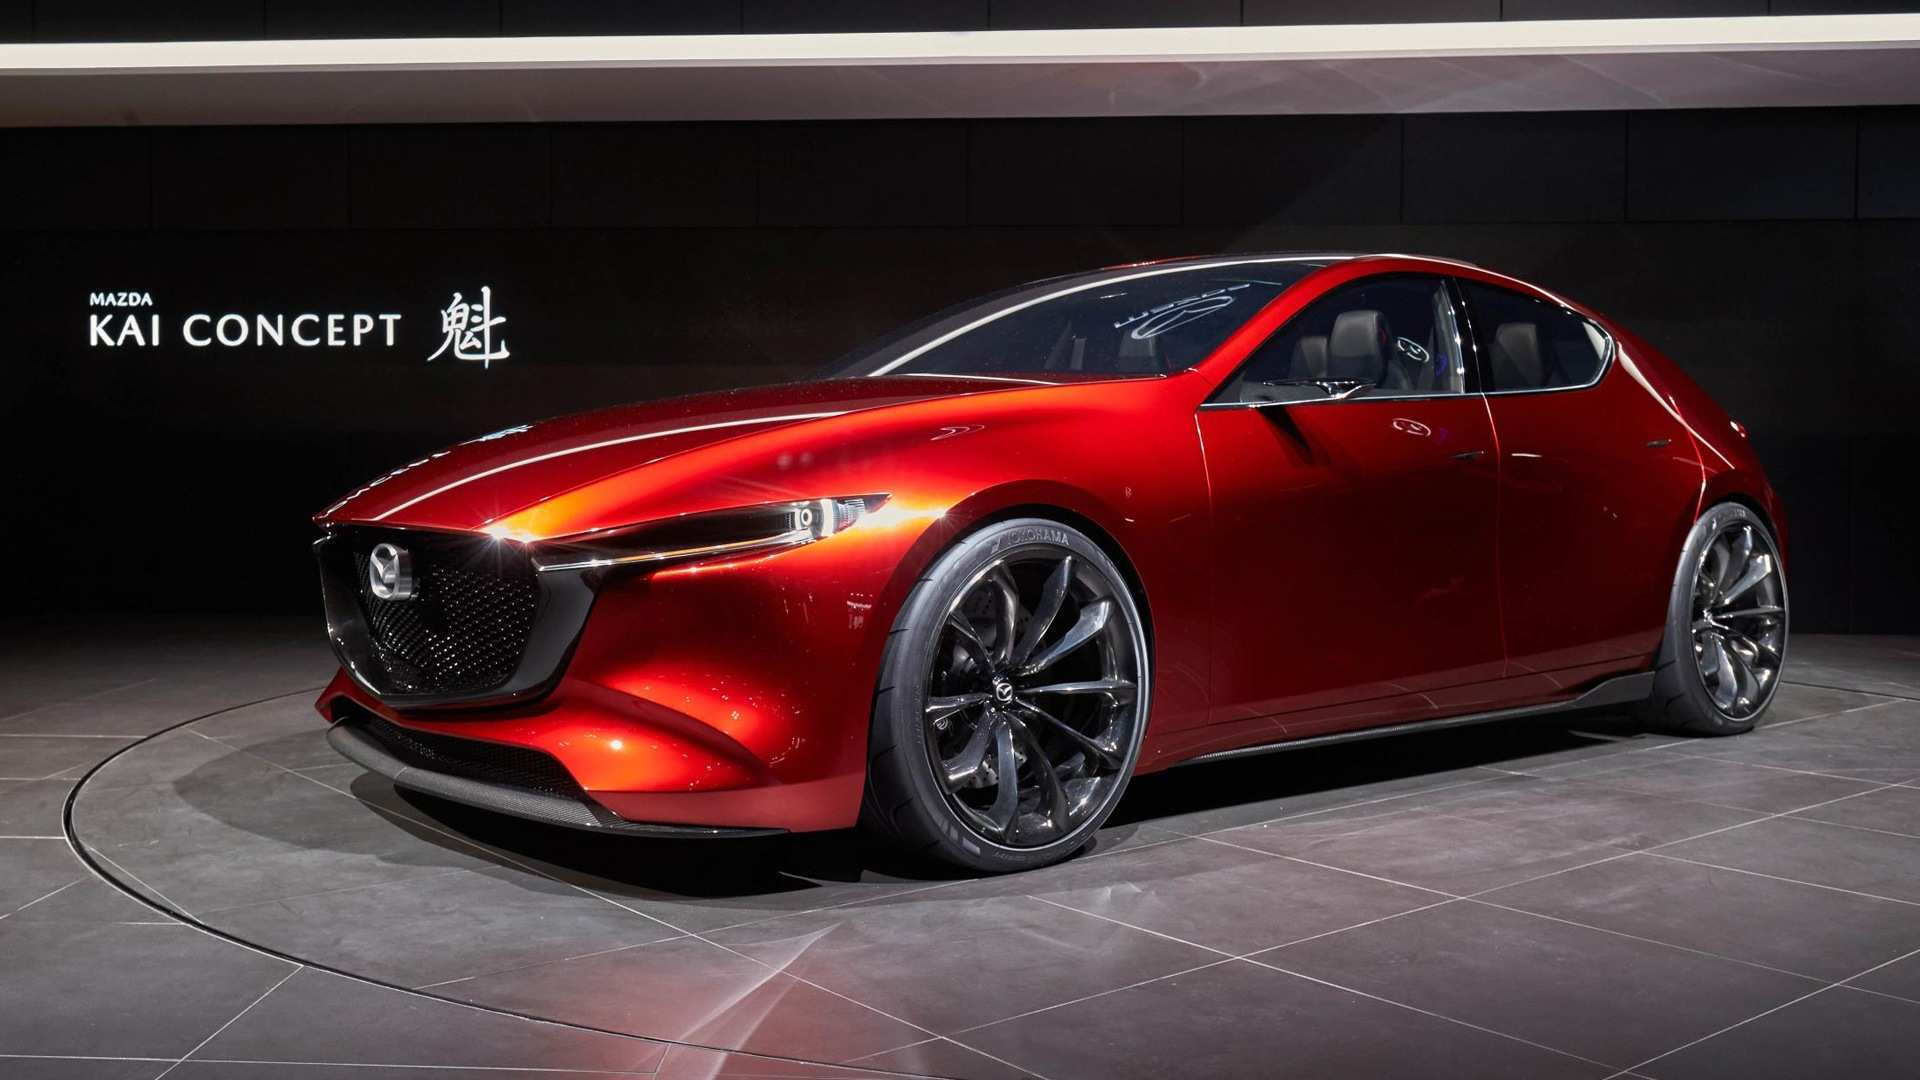 32 All New Mazda Kai 2020 Price And Review